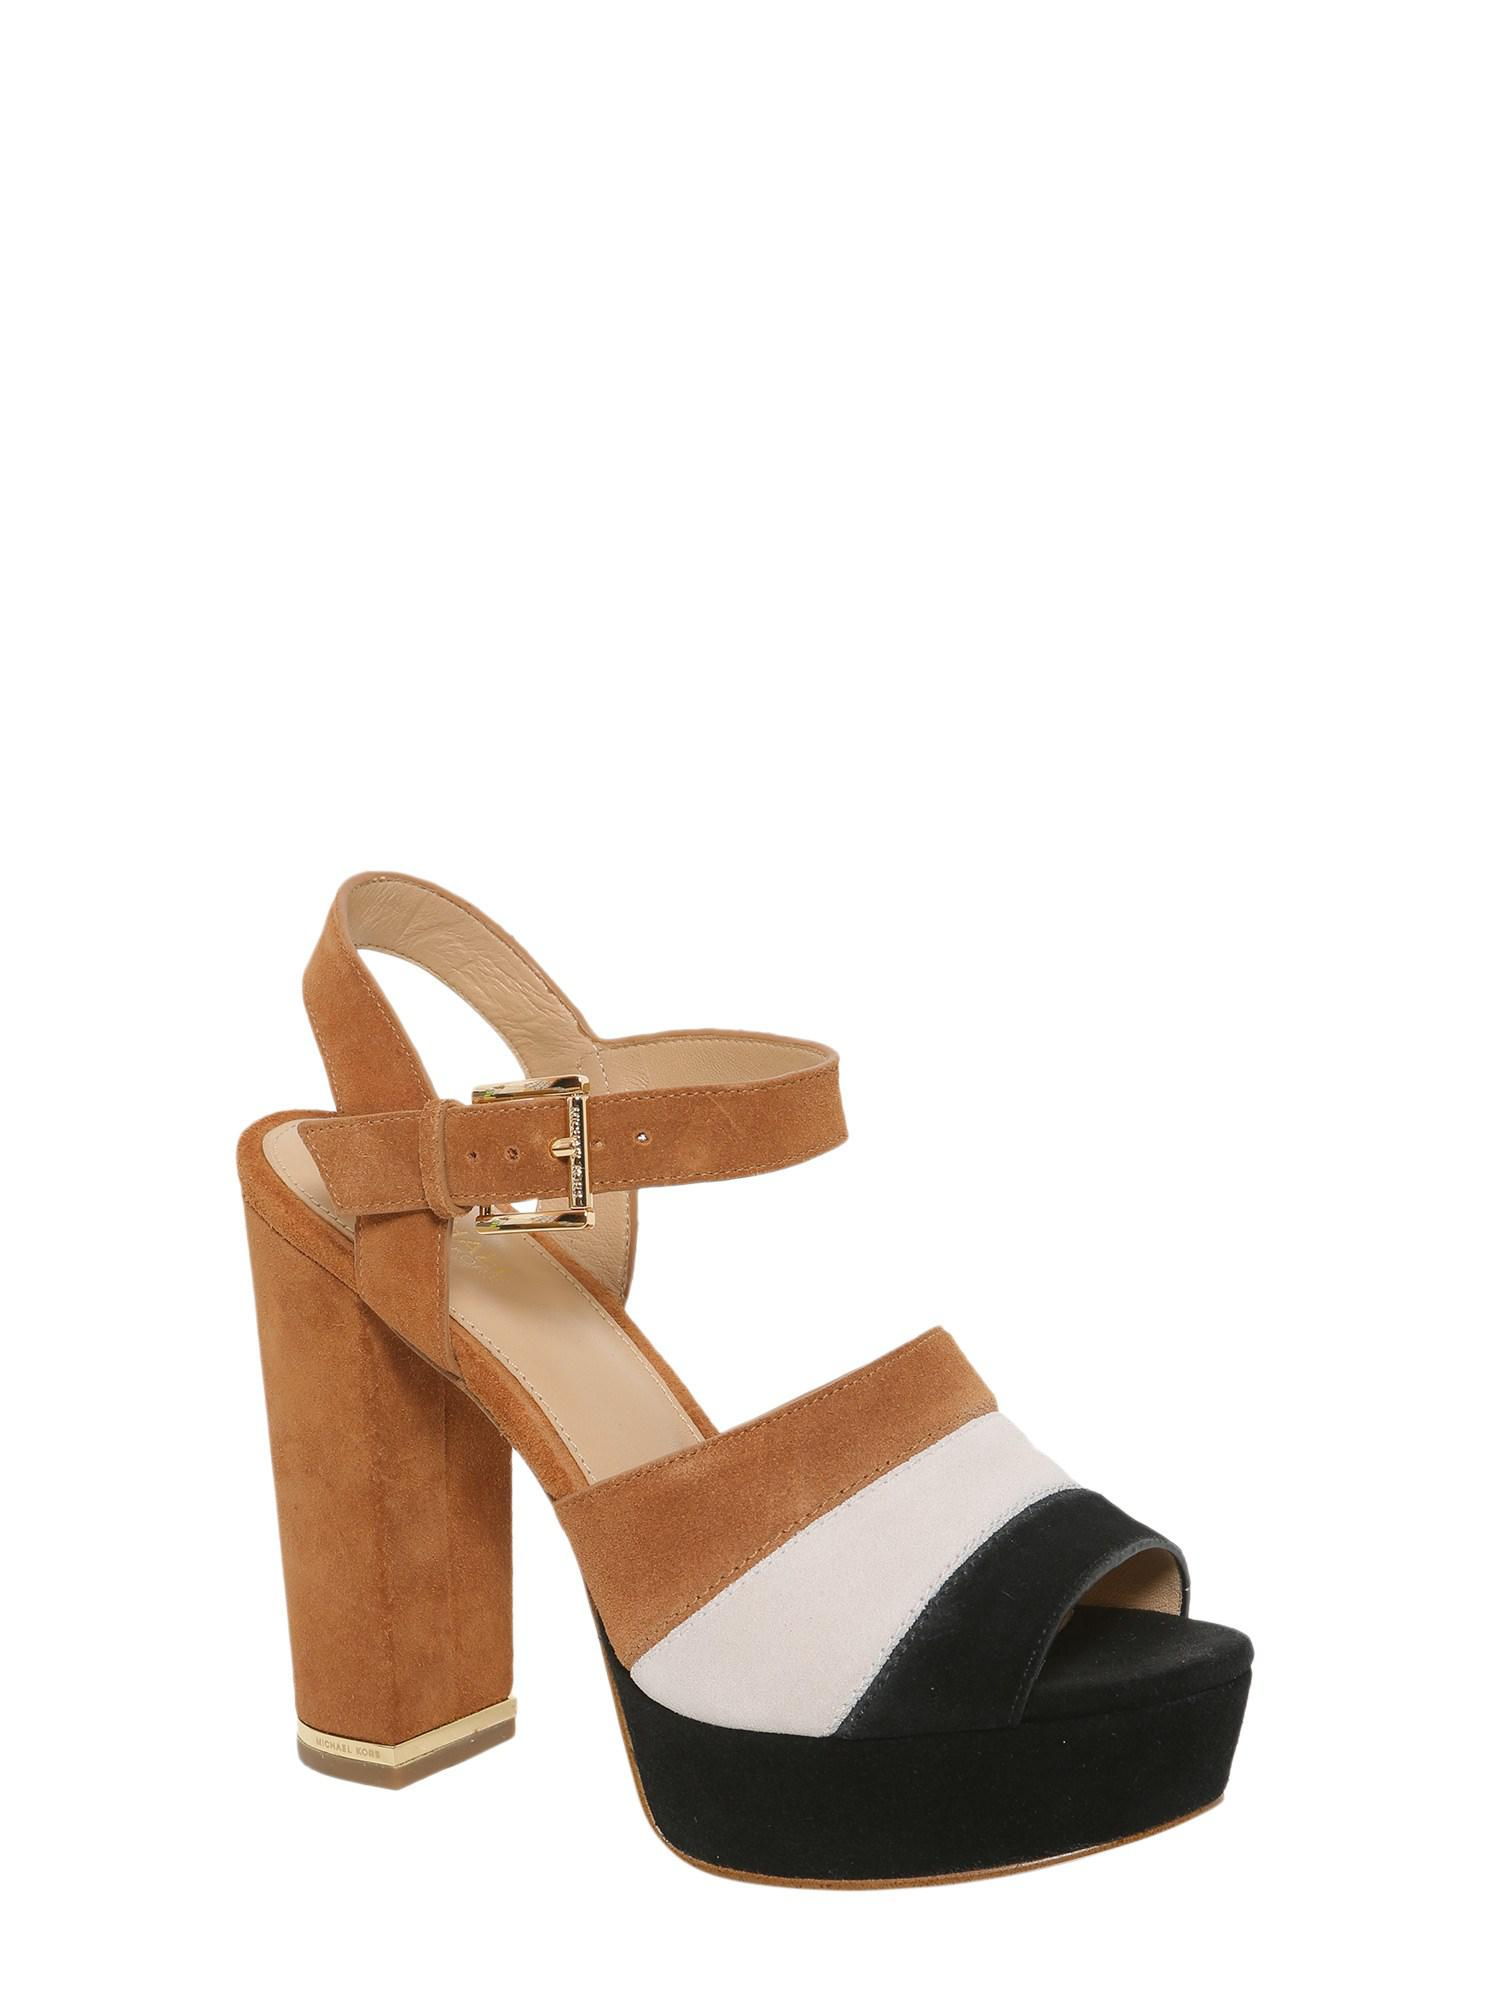 c68e10e907ef47 MICHAEL Michael Kors - Brown Platform Anise In Suede - Lyst. View fullscreen